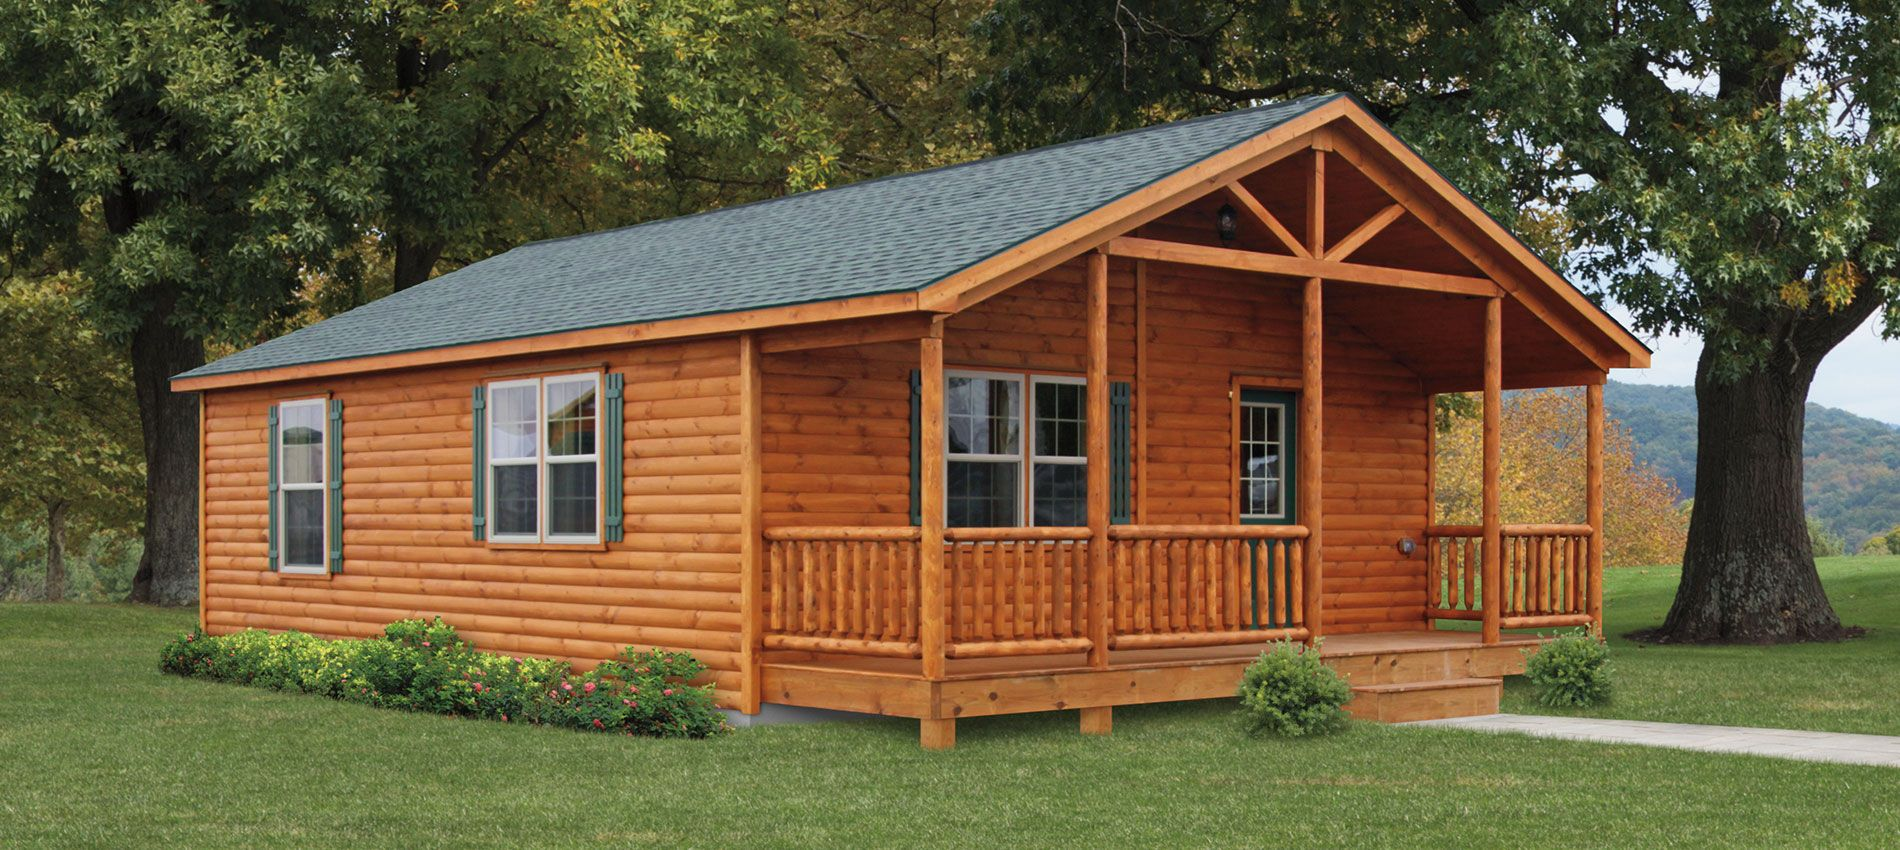 amish log cabin homes for sale by zook cabins | Houses in 2019